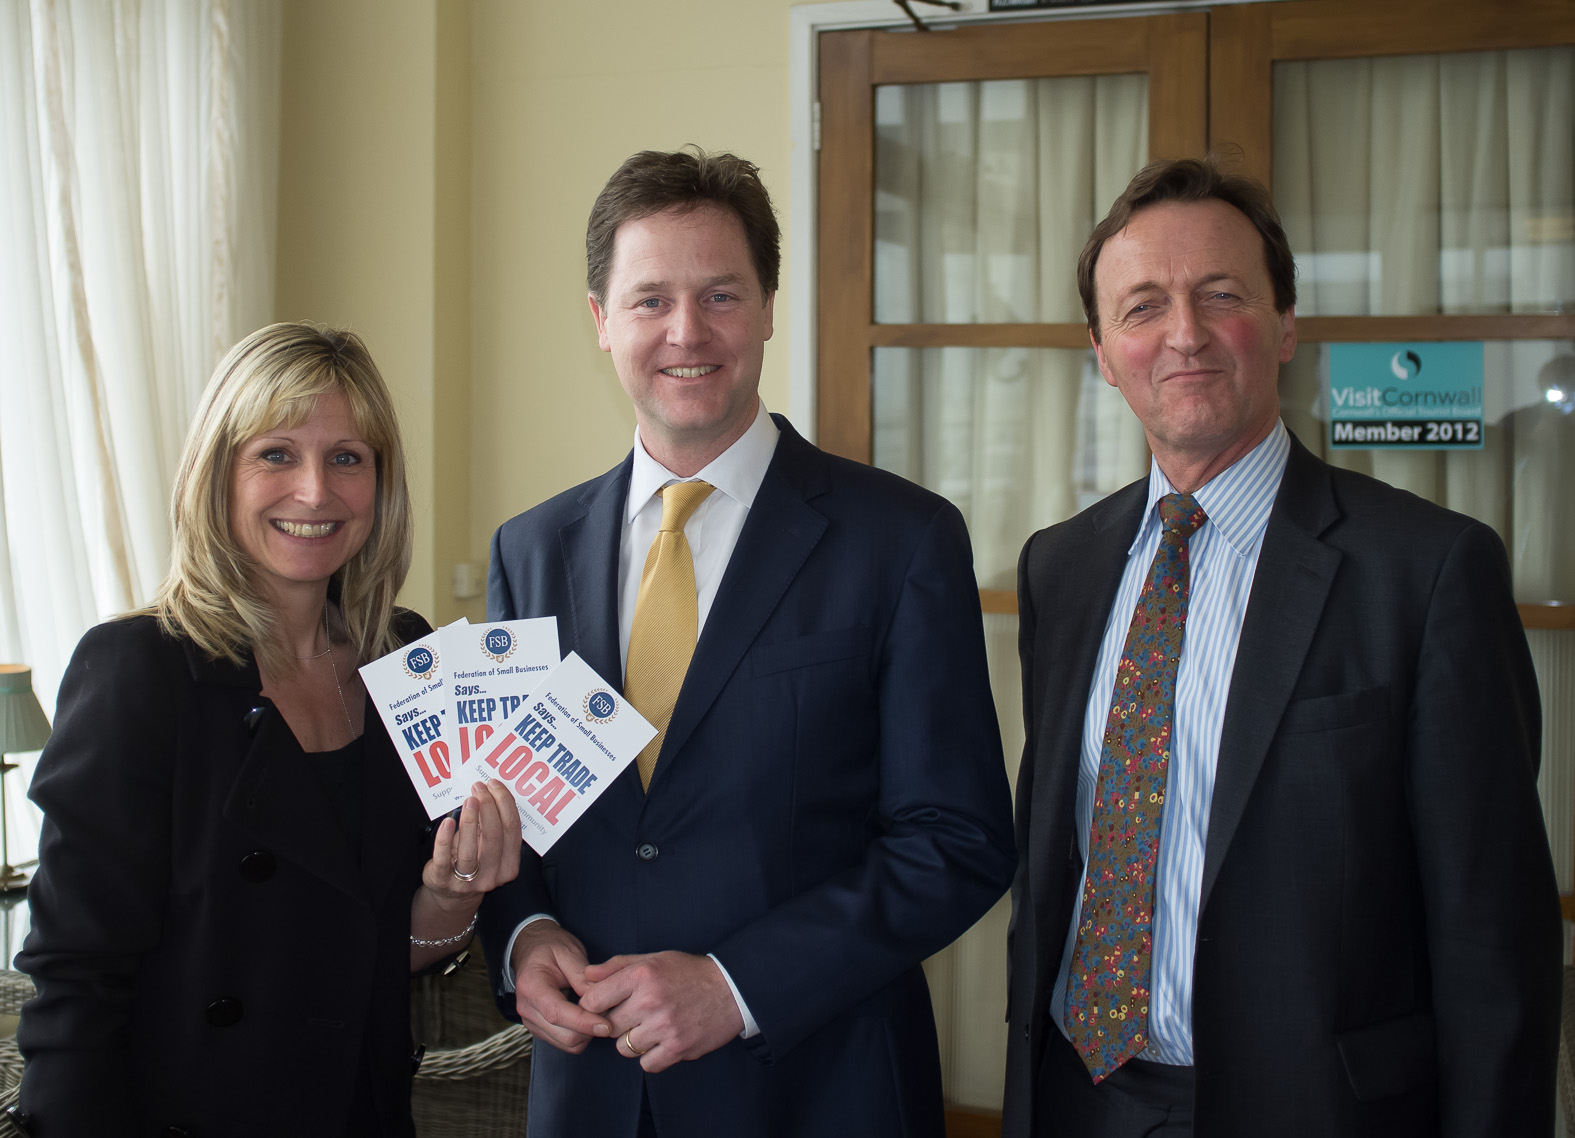 Ann Vandermeulen with Nick Clegg and Andrew George